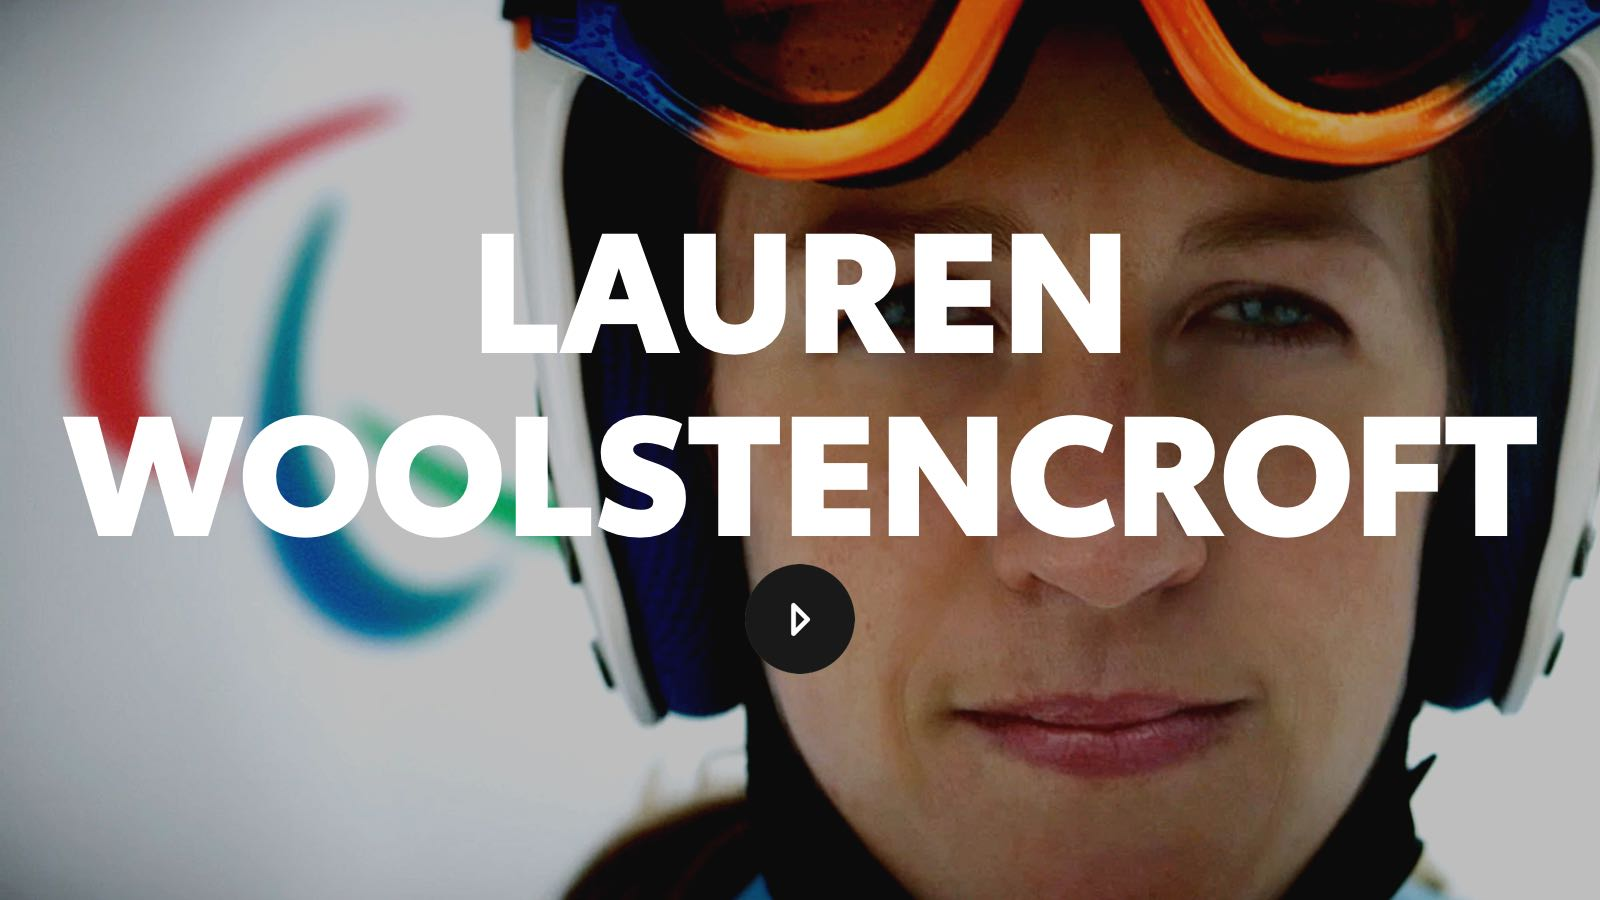 Lauren, wearing her crash helmet with her goggles pulled up, stares into the camera, ready to race.